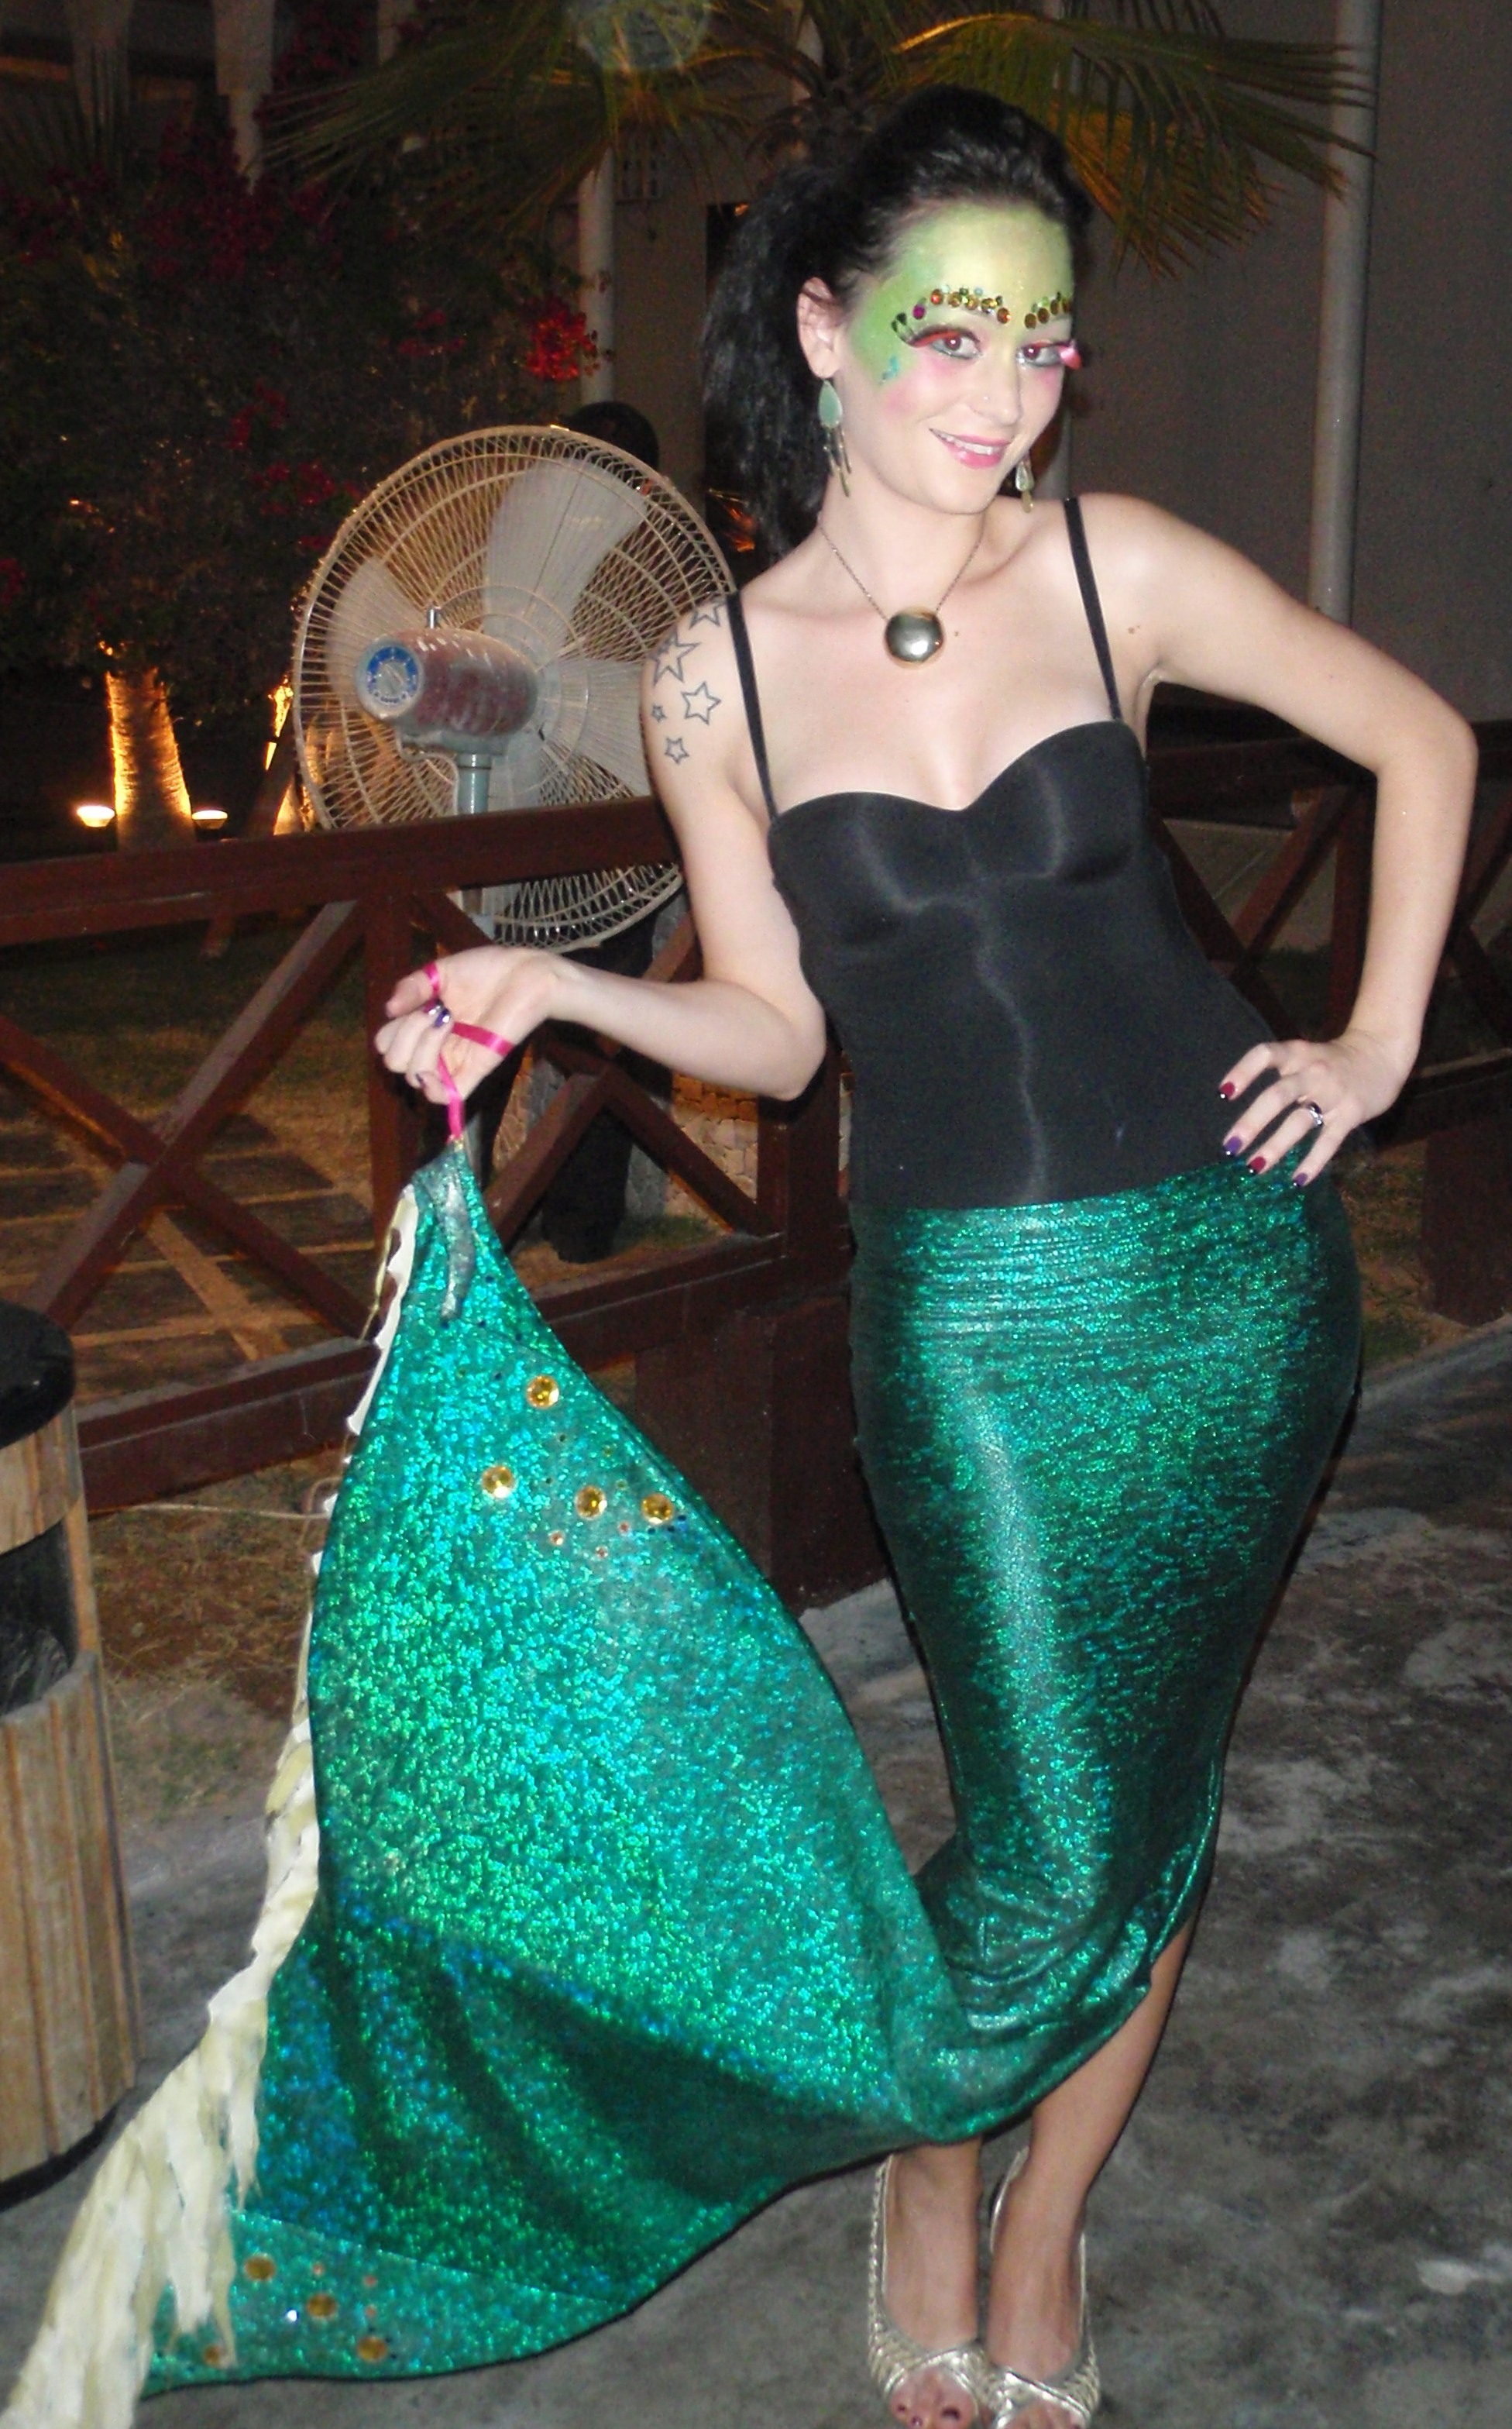 Mermaid Costume Sewing Projects